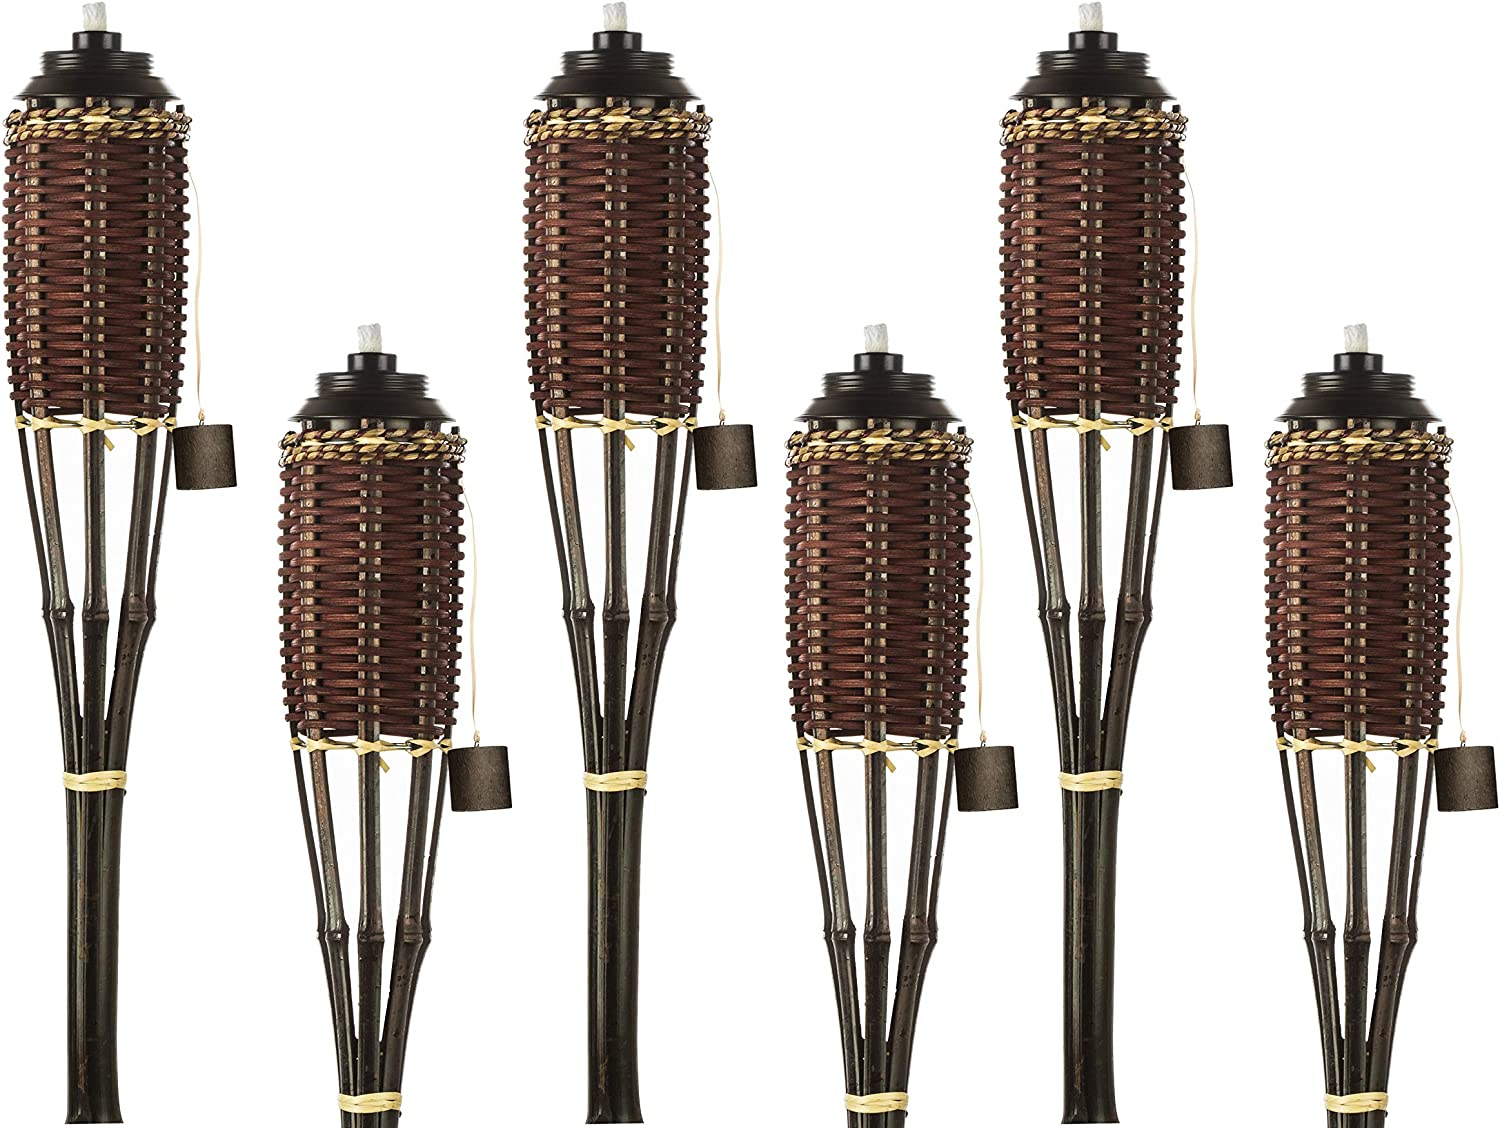 Bamboo Torches; Decorative Torches; Fiberglass Wicks; Extra-Large (16oz) Metal Canisters for Longer Lasting Burn; Stands 59